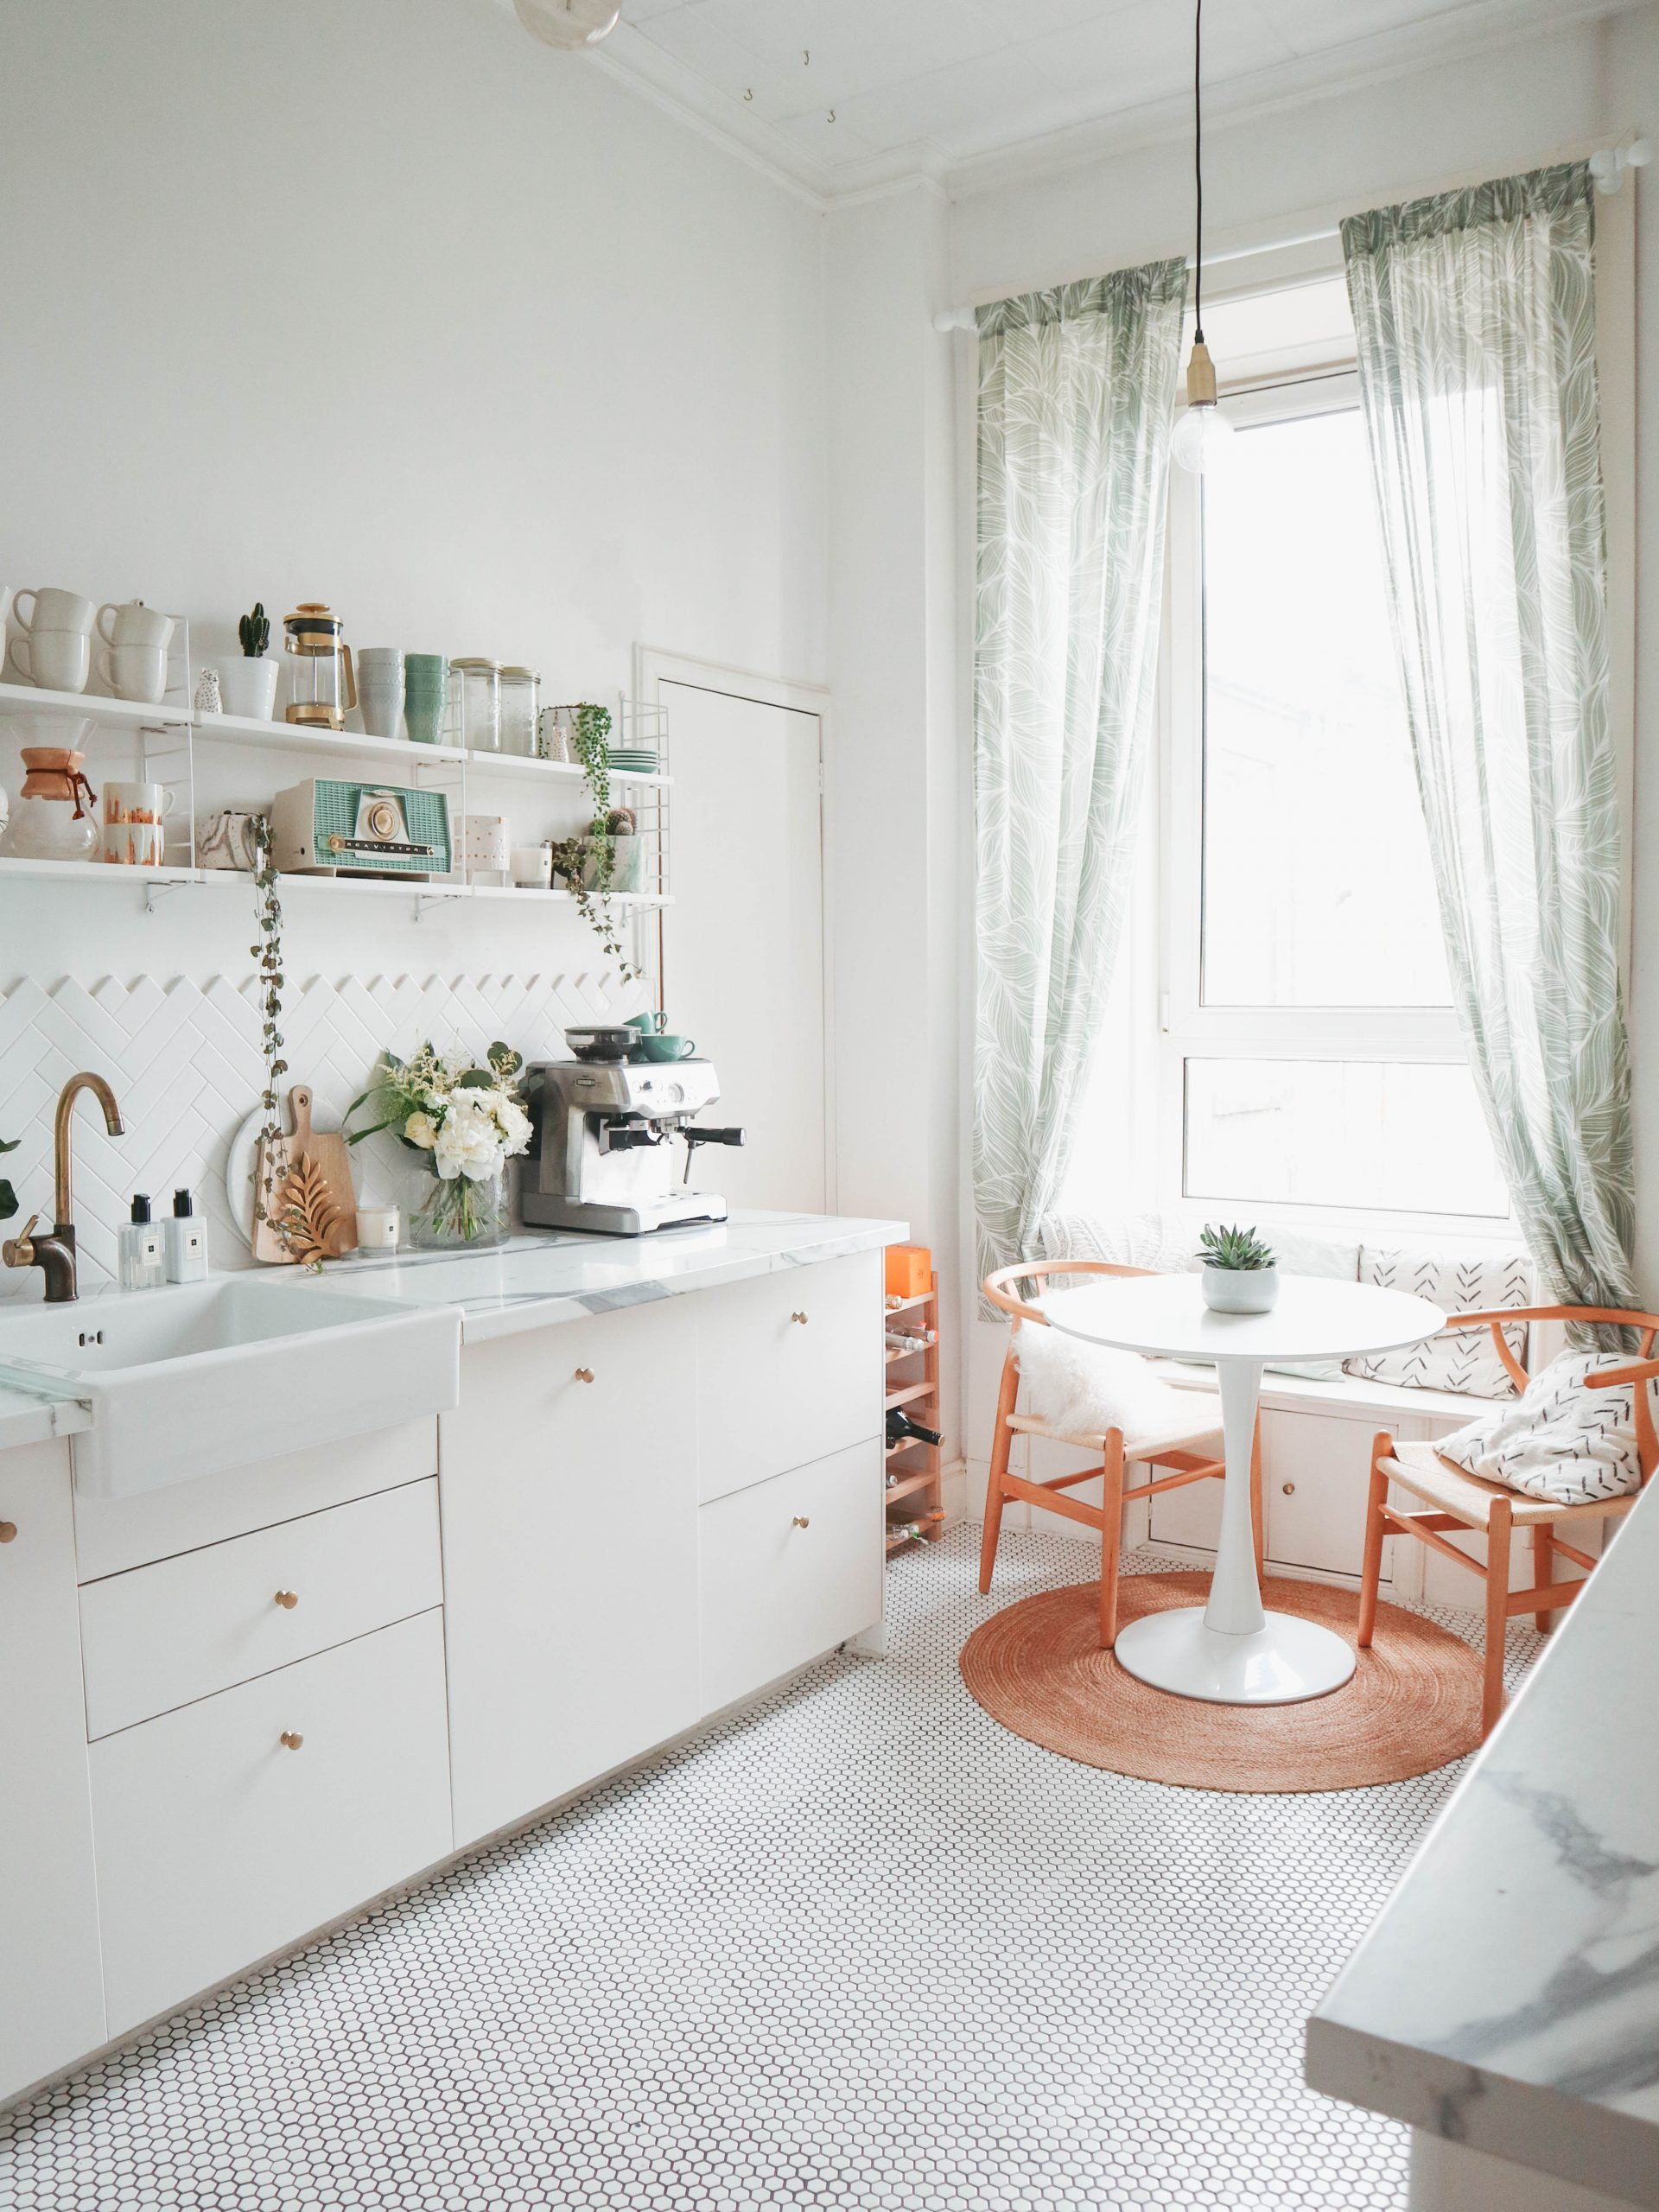 The Best And The Most Stylish Affordable Kitchens The Frugality